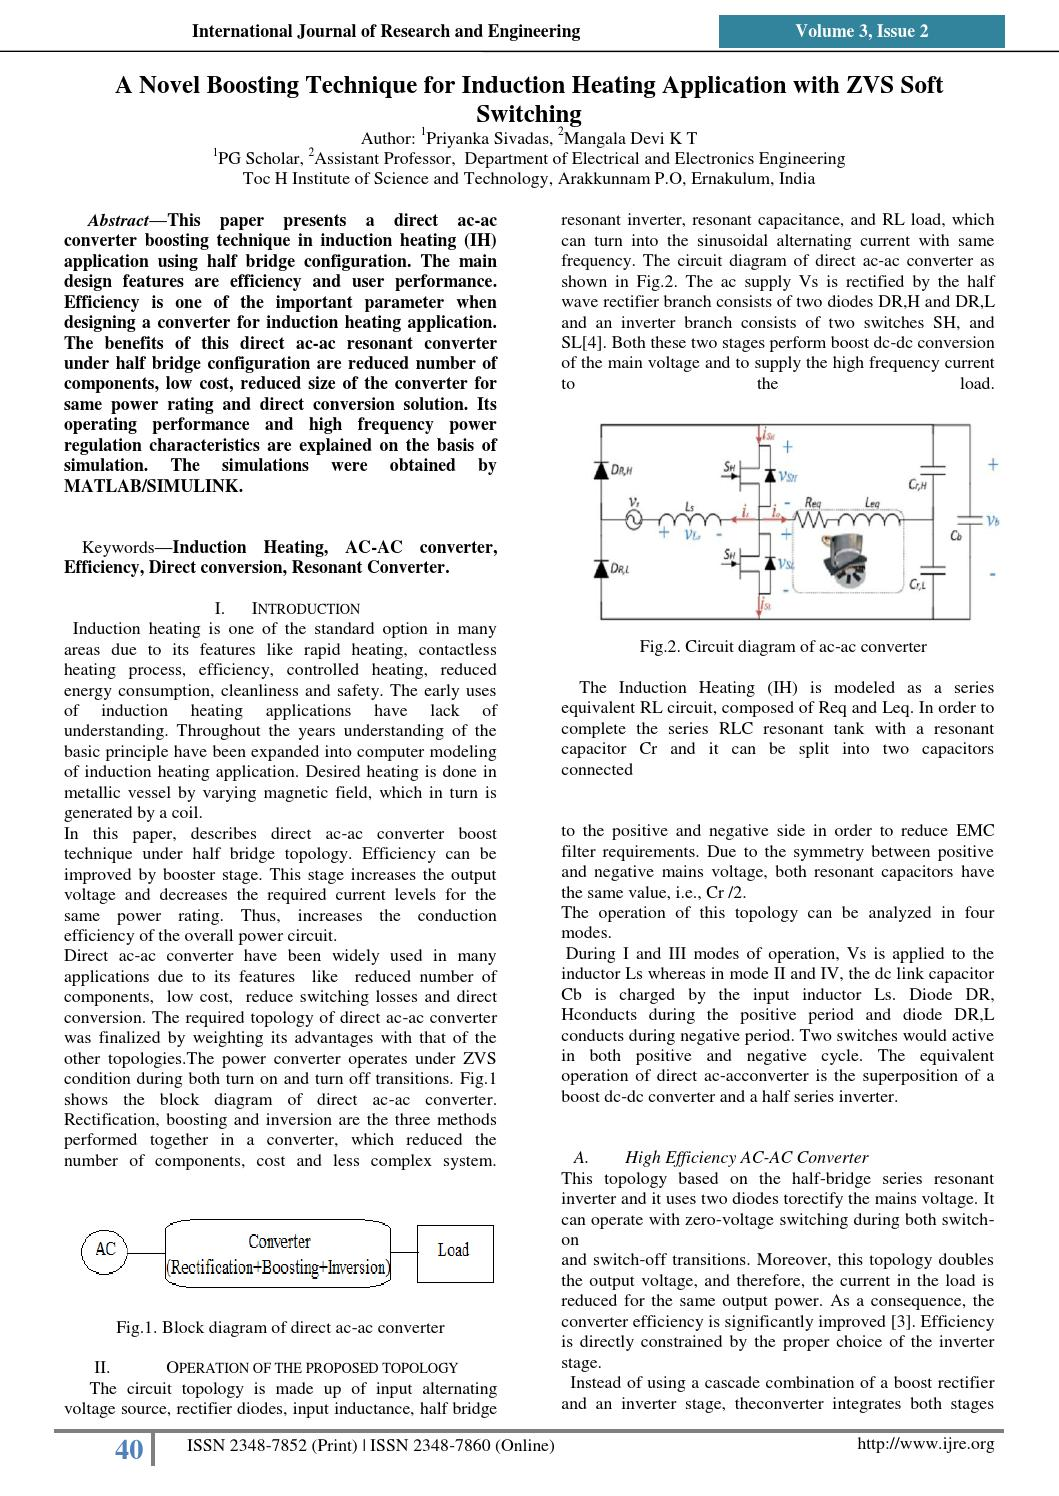 Ijre 8 A Novel Boosting Technique For Induction Heating Application Halfwave Rectifier Topology The Circuit Is With Zvs Soft Switching V3i2 U30 By International Journal Of Research And Engineering